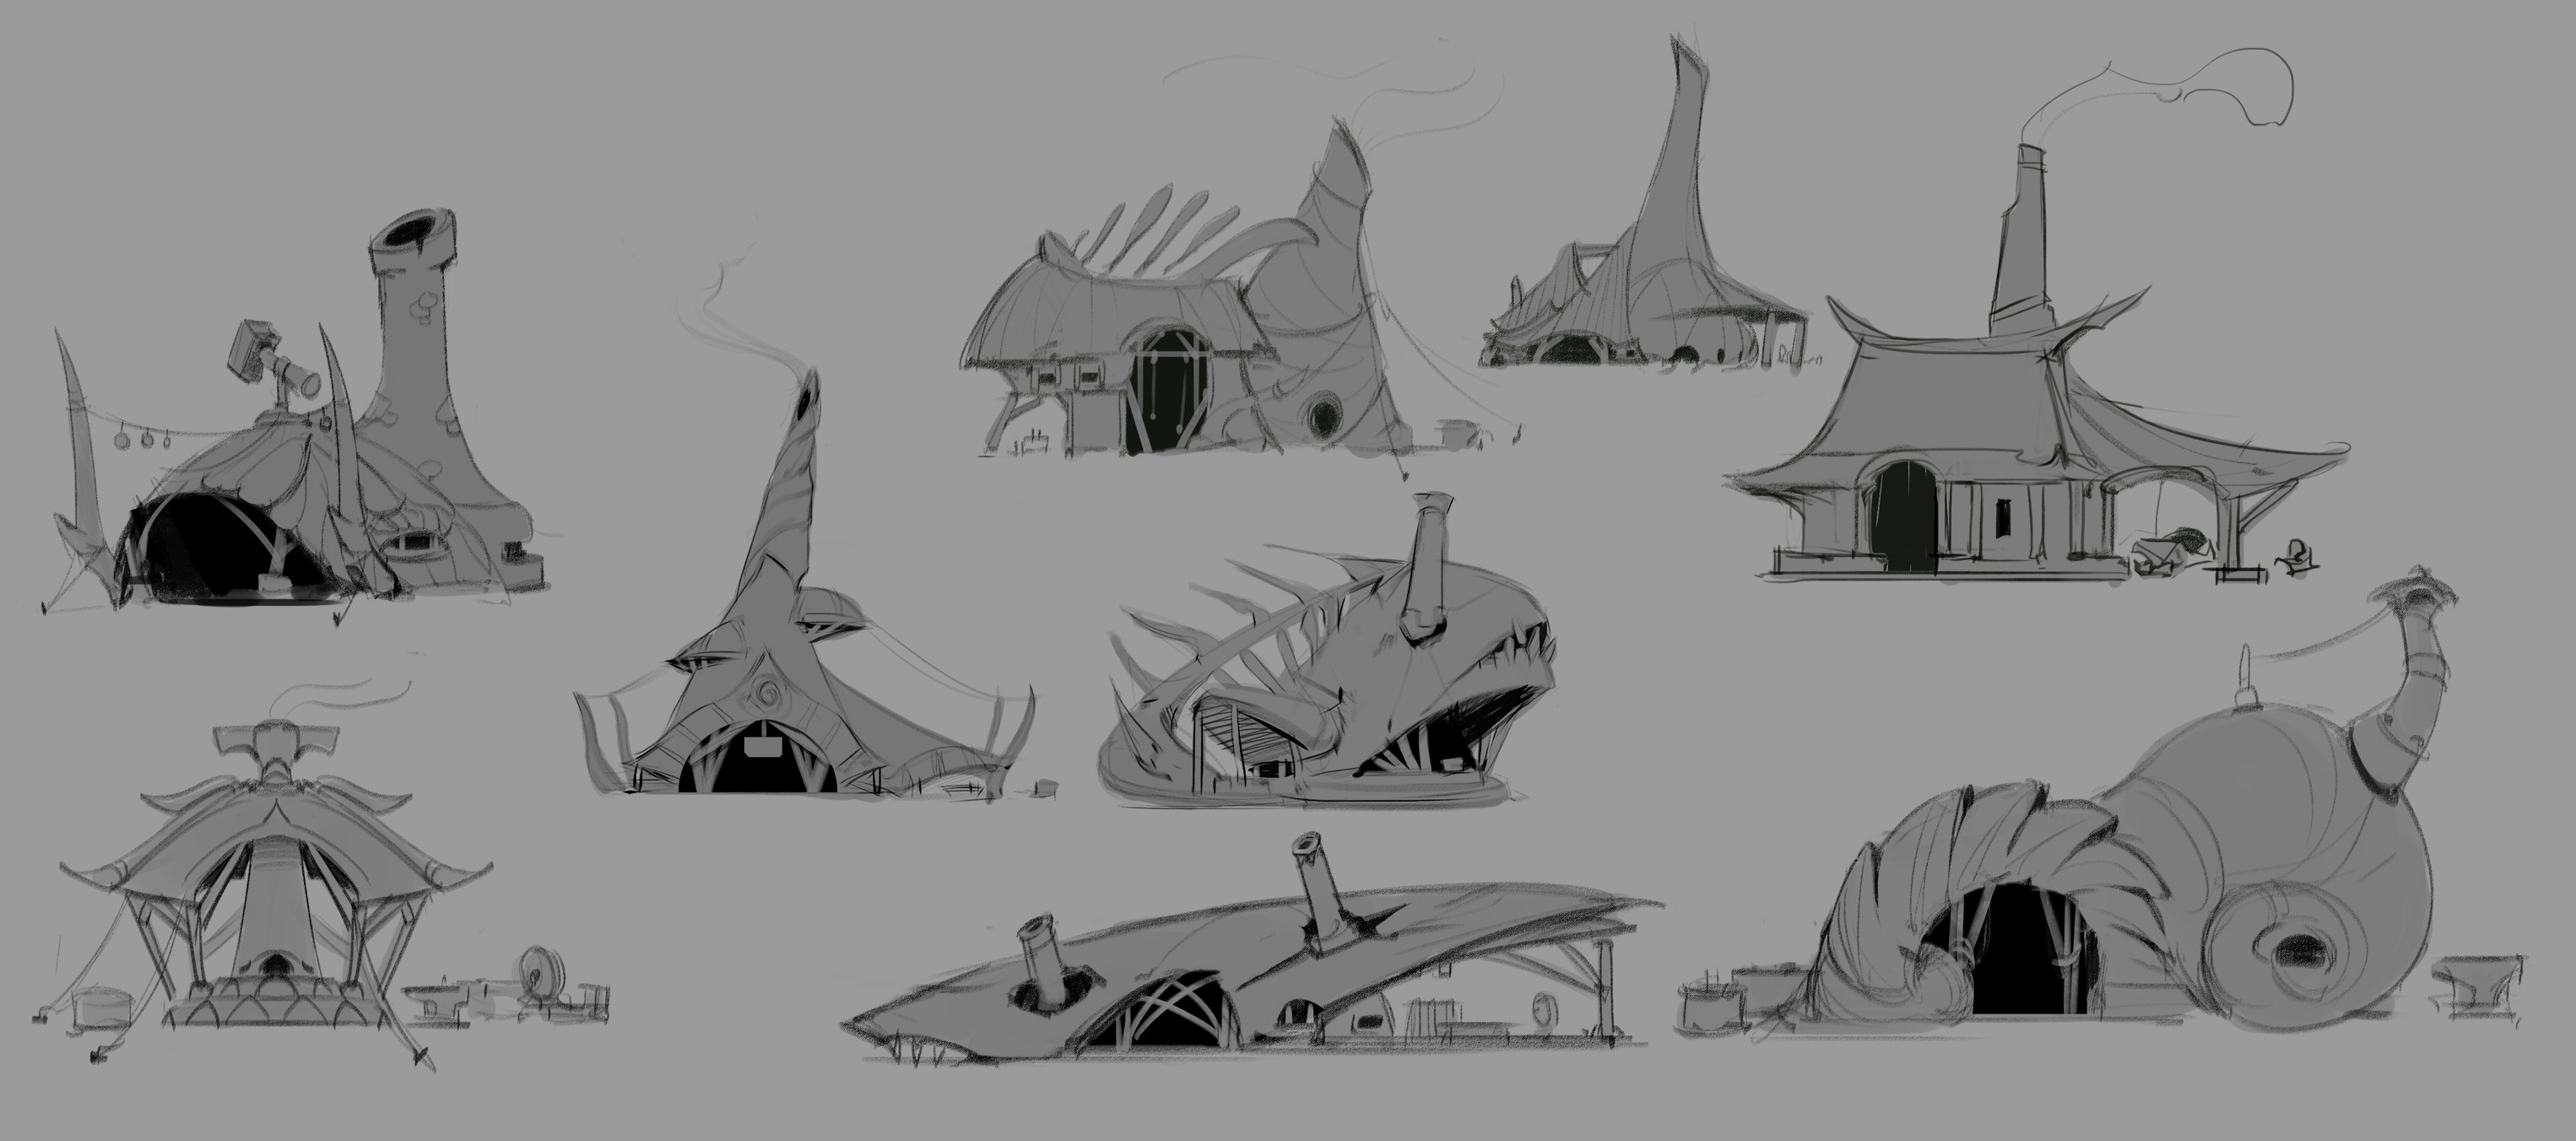 Exploration sketches